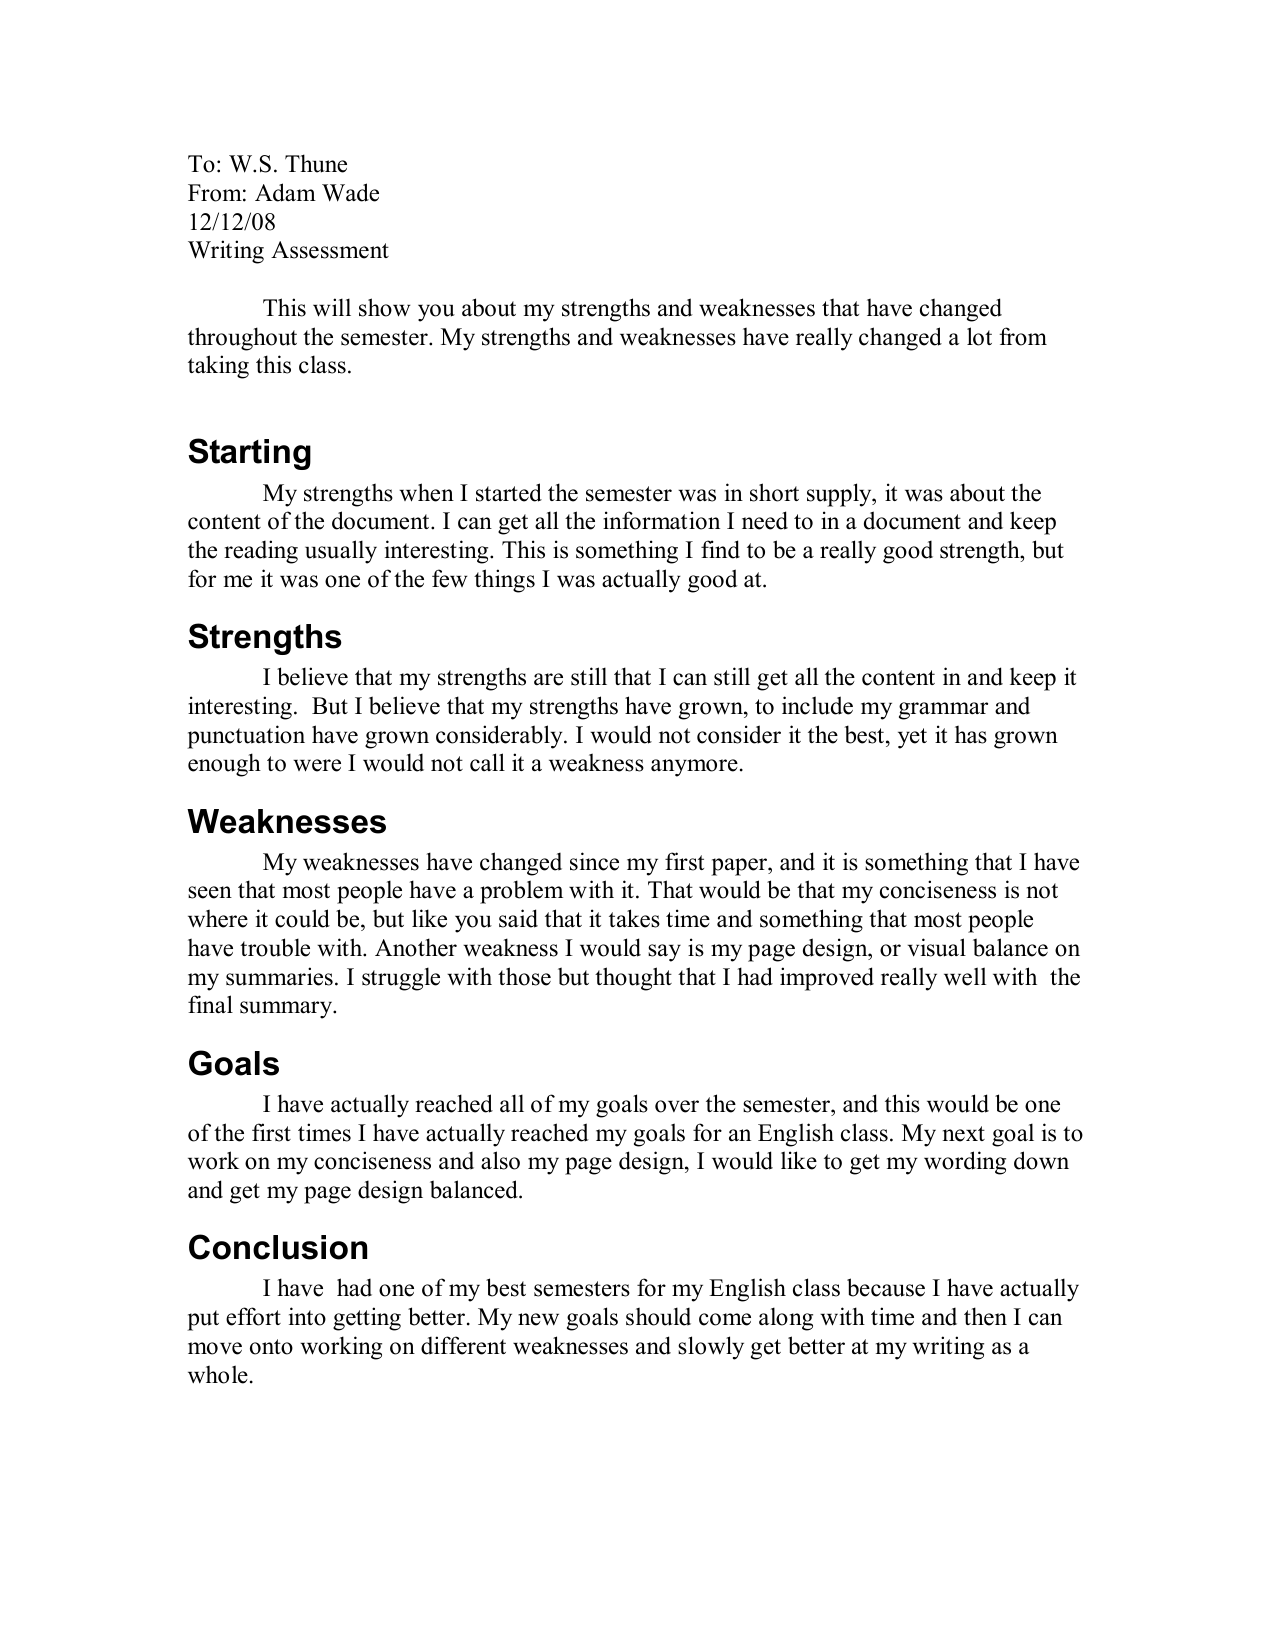 Strengths as a writer essay